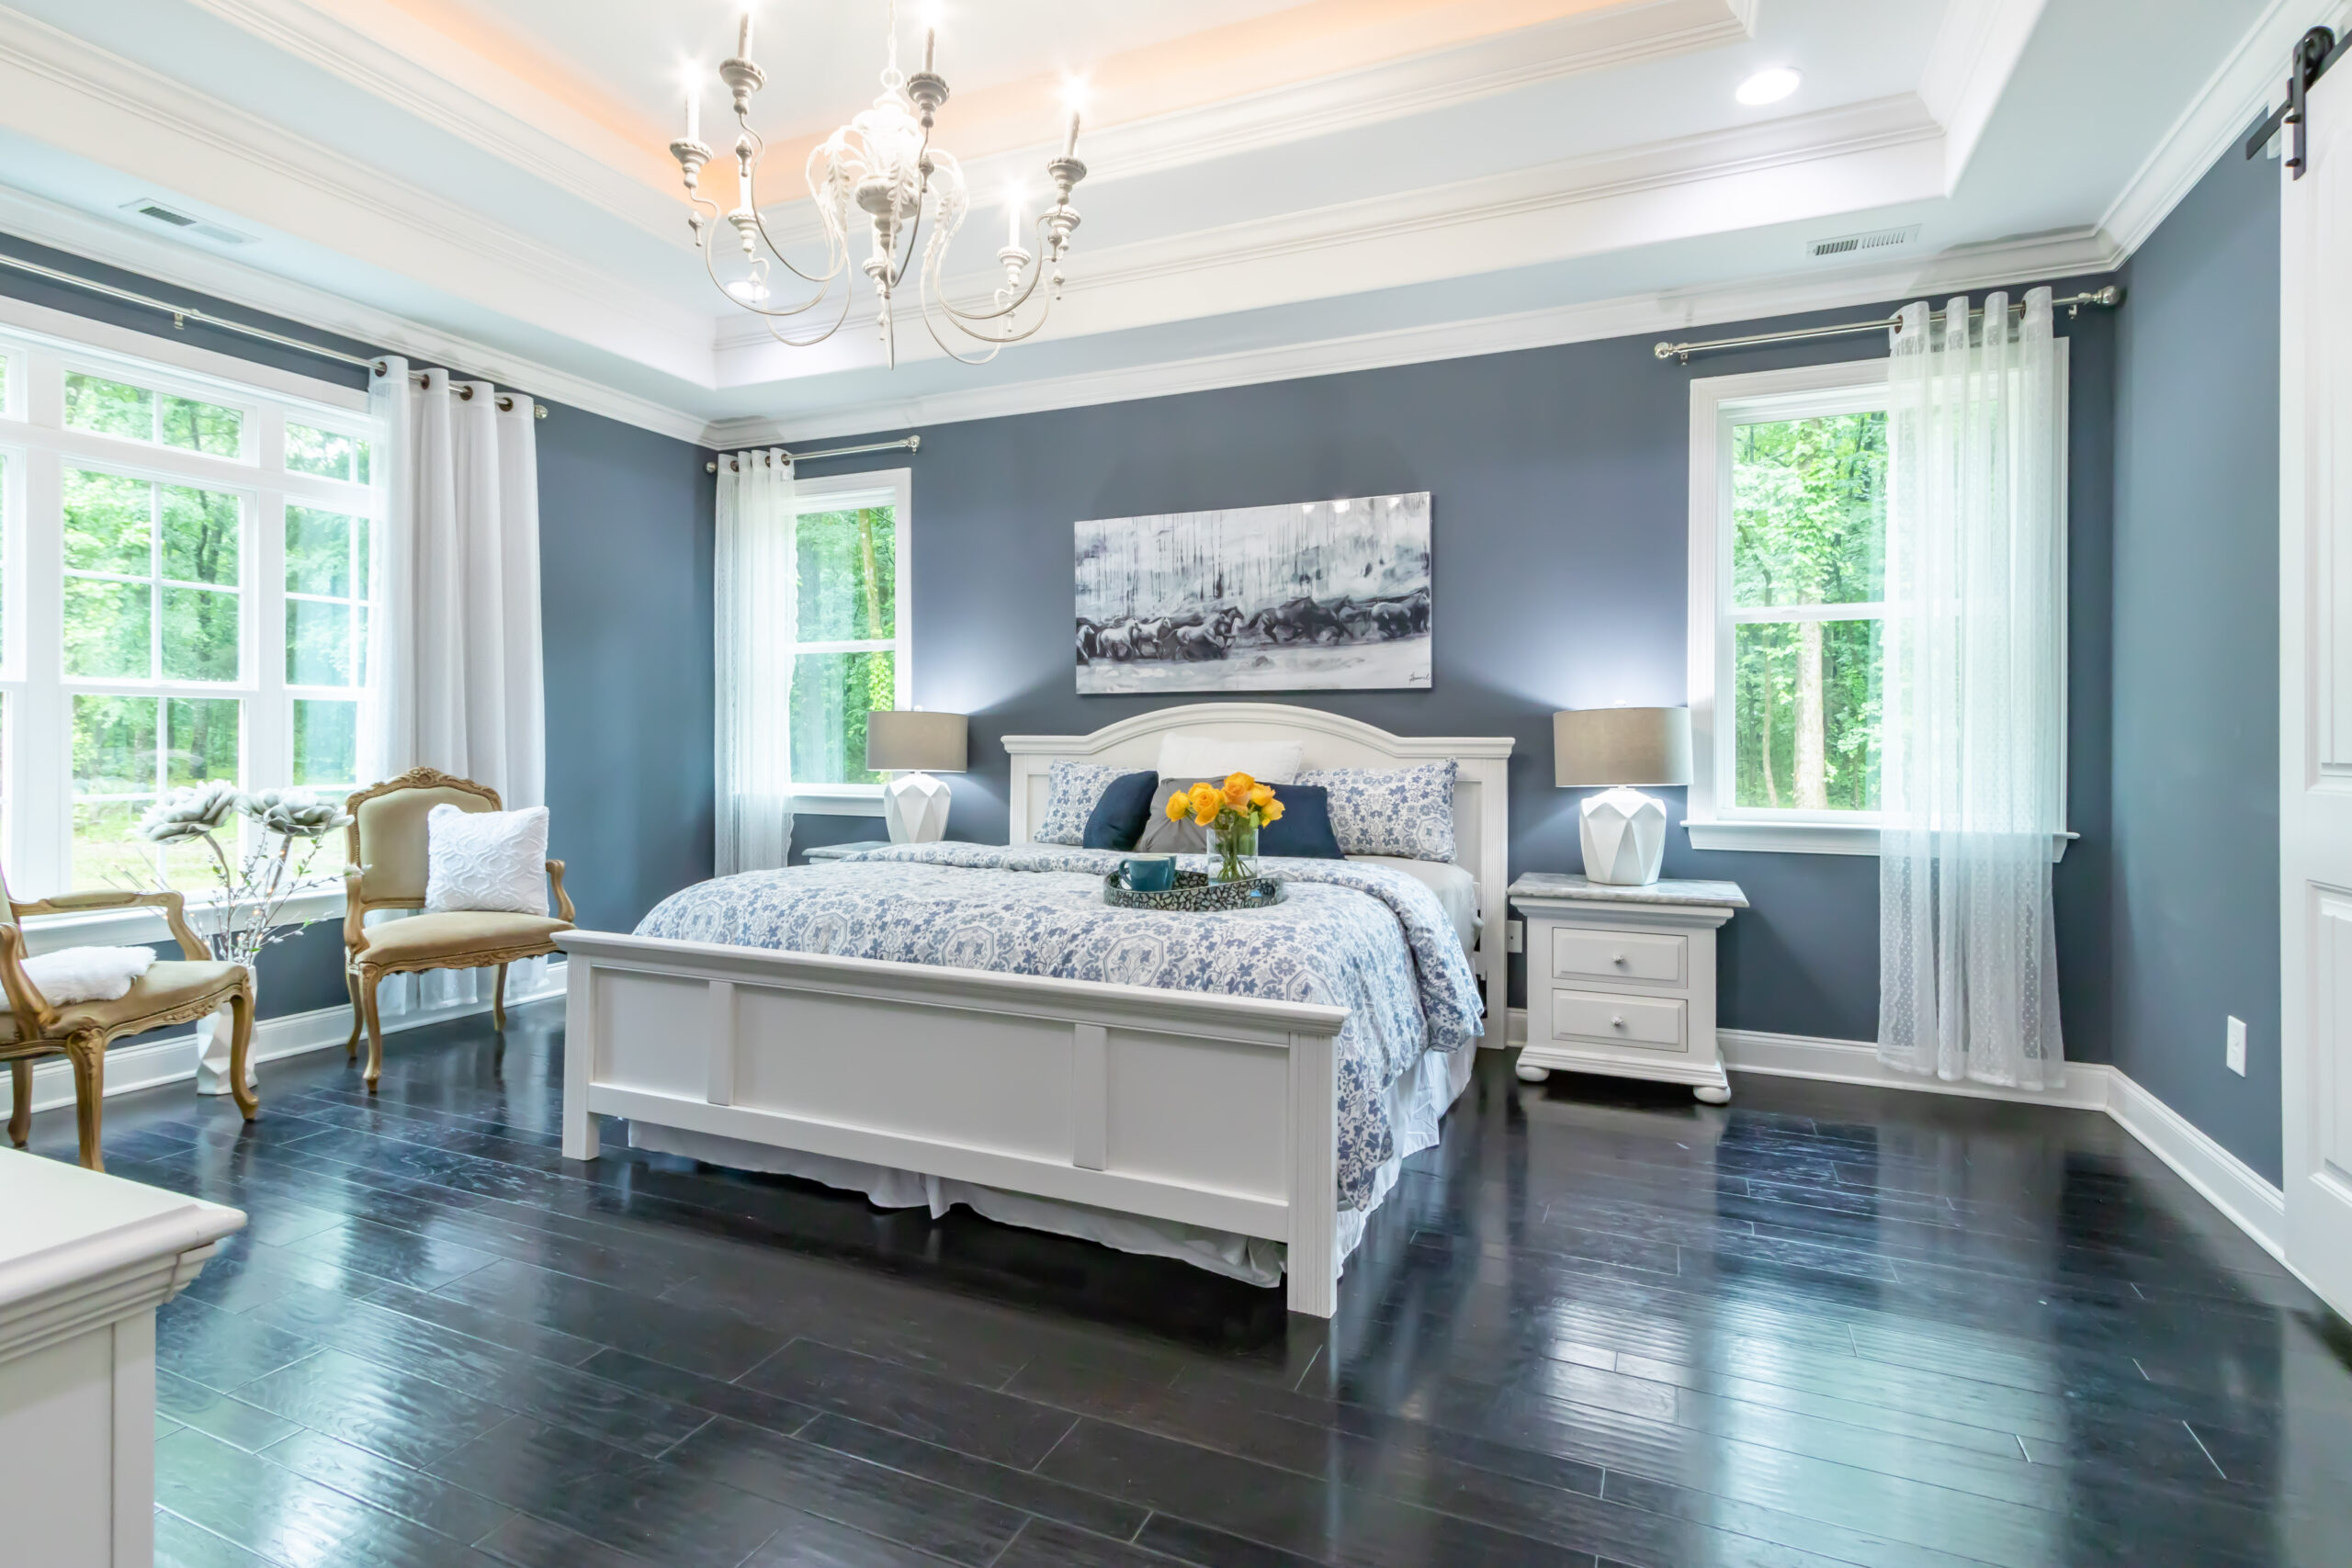 Beautiful interior design of bedroom with painted light grey walls - article decoding common paint terms.